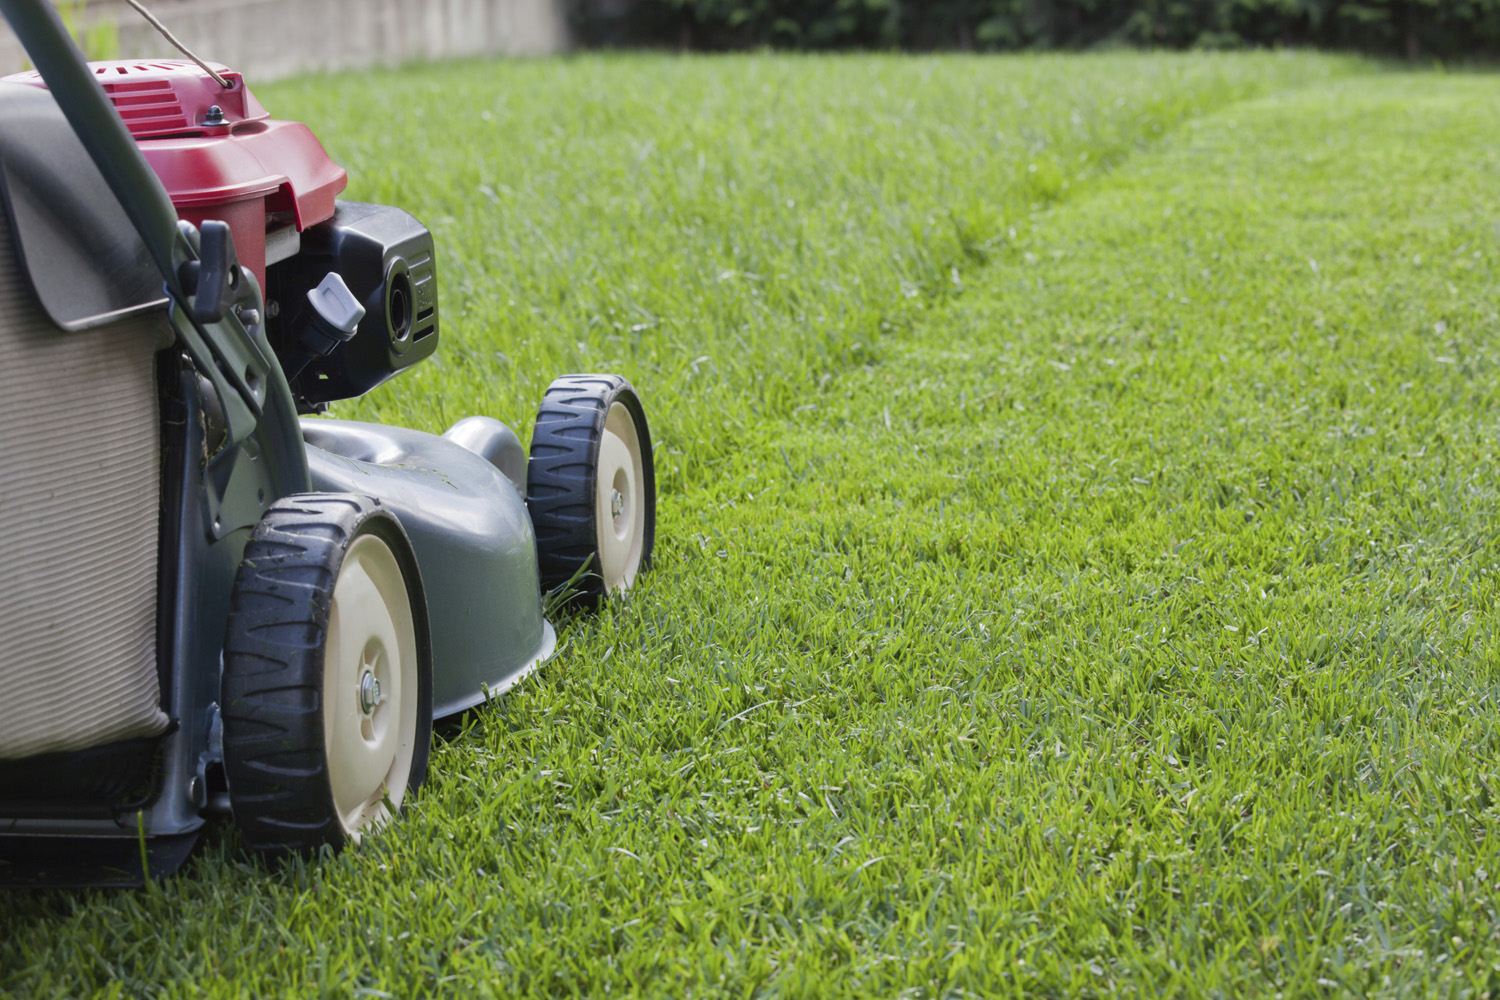 Super bowl groundskeepers share lawn care tips american for Garden maintenance tips